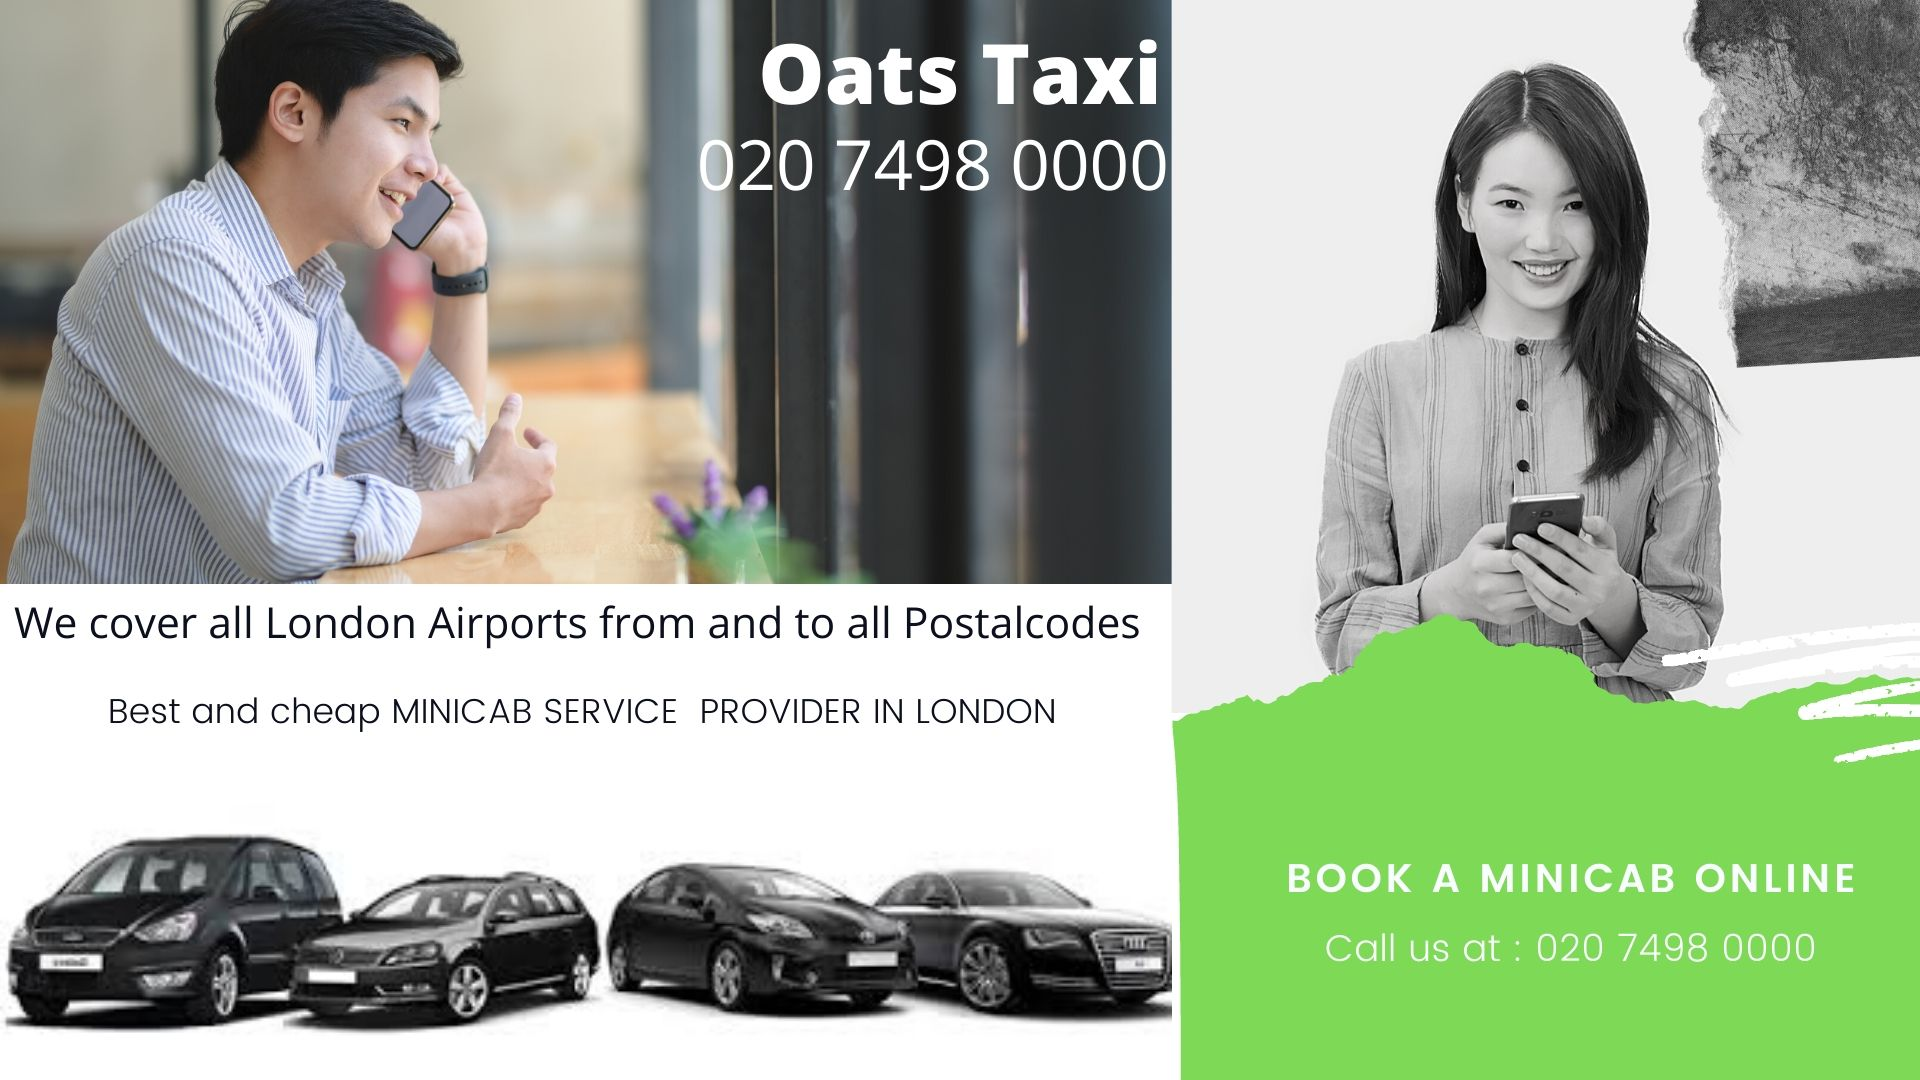 Minicab Office Near FORFAR ROAD, Battersea SW11, Minicab From Battersea SW11 To Gatwick Airport